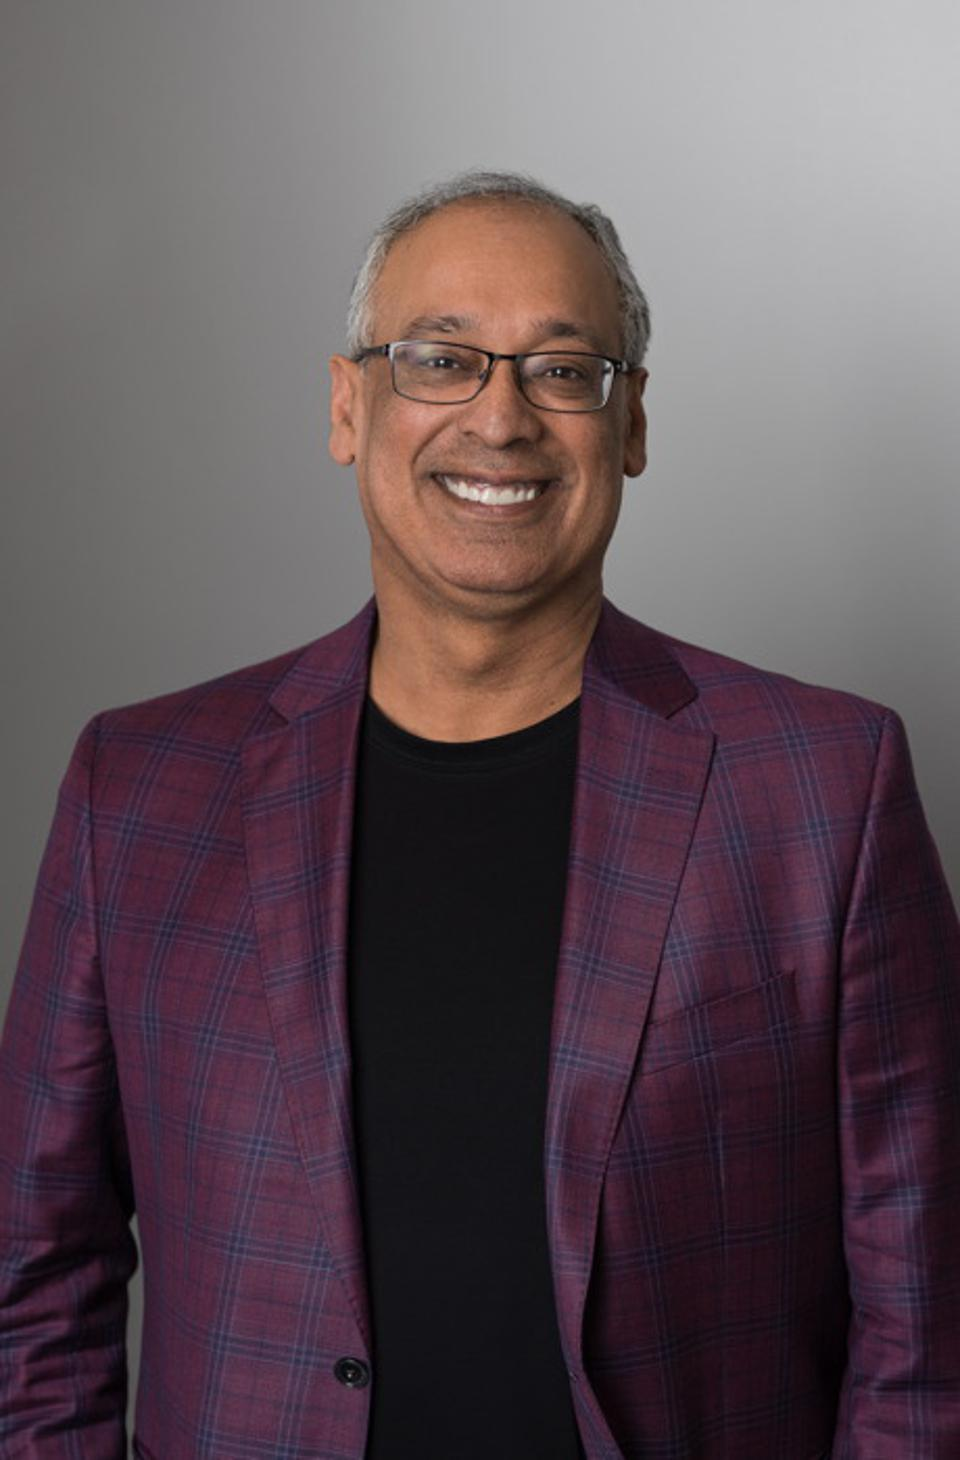 Vik Verma, CEO of 8x8, a full-featured communications platform provider, with complete applications for phone, videoconferencing, collaboration, and contact centers, all with underlying analytics and data.